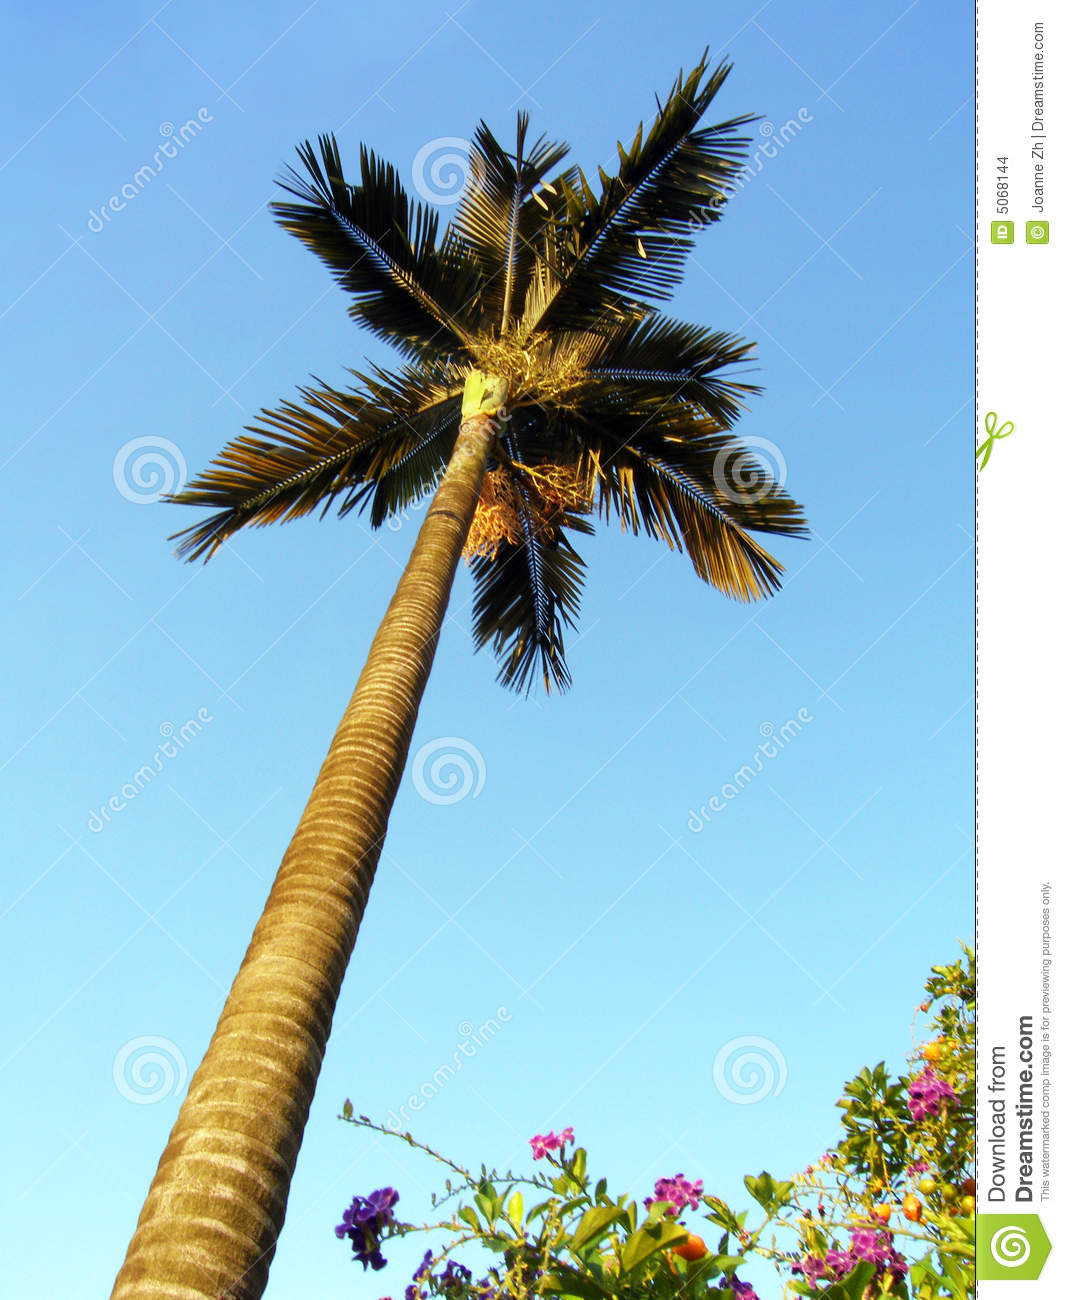 how to preserve cut palm fronds